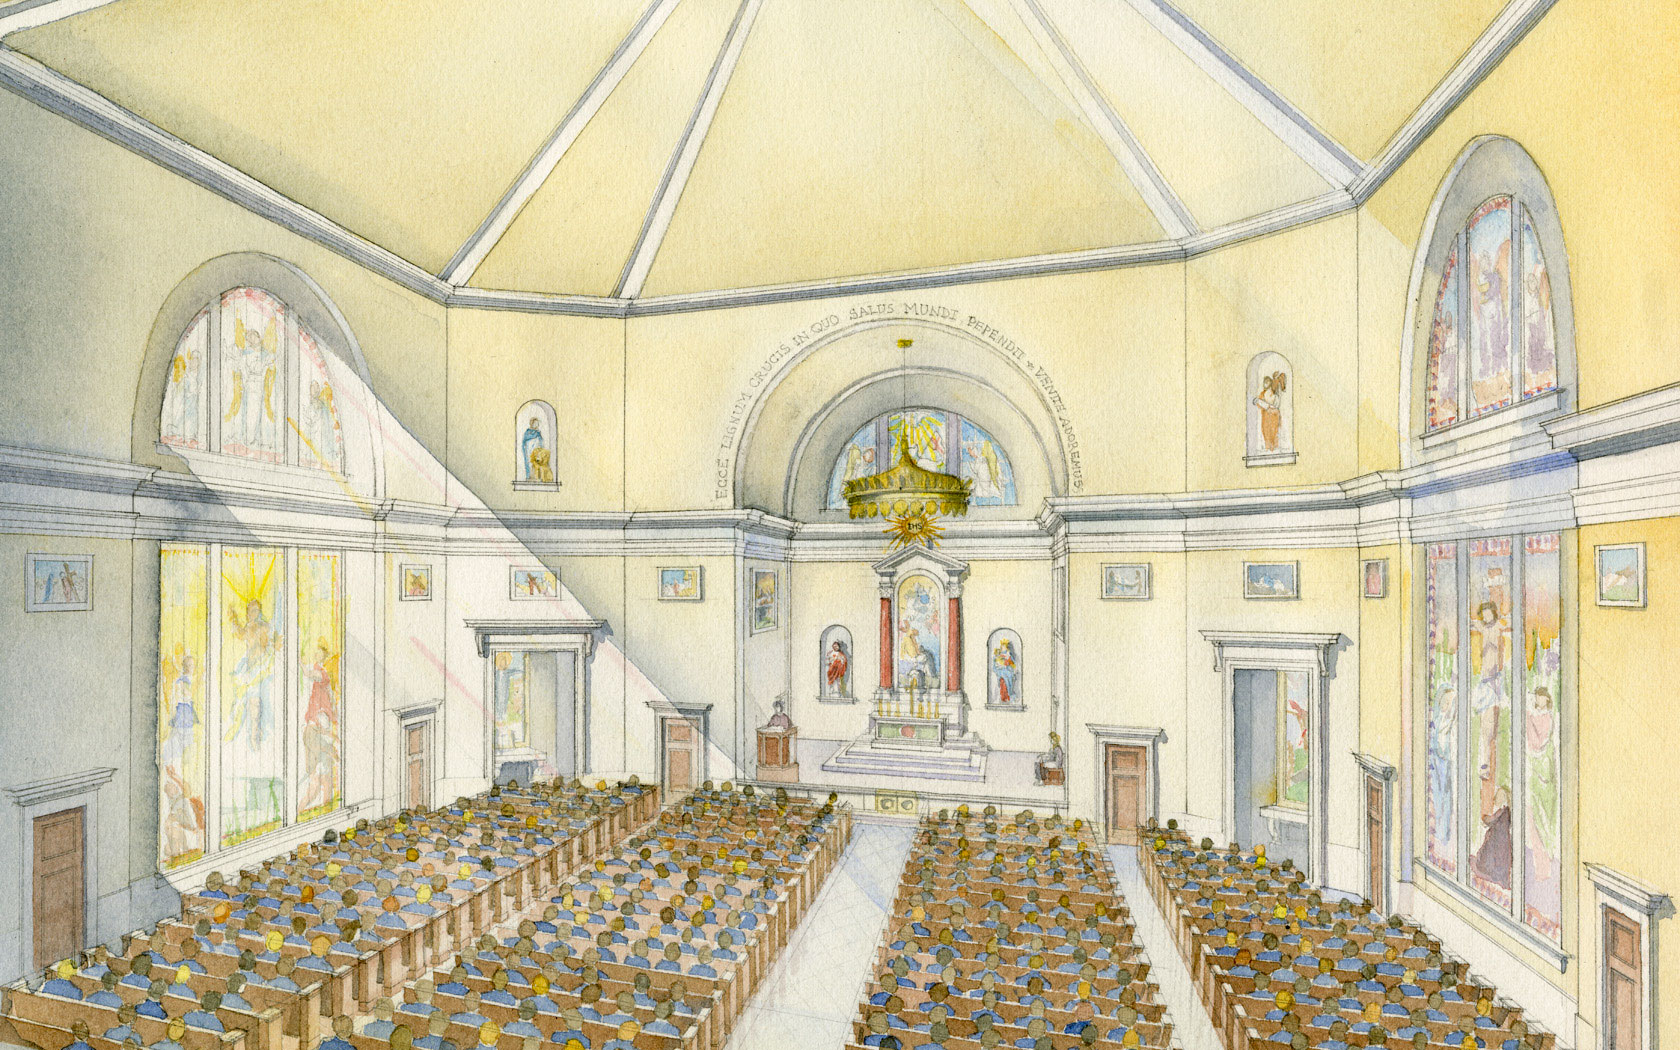 """CHAPEL OF THE HOLY CROSS, Tampa, Florida. Jesuit High School, founded in Tampa, Florida in 1899, moved to its current campus in 1956 to continue educating young men in the Jesuit tradition. The Chapel of the Holy Cross, to be dedicated in 2017, is a brick and limestone chapel inspired by the Jesuit tradition and by the centralized form of the existing Saint Anthony's Chapel. It is designed to seat 900 and will provide a transcendent space for the Holy Liturgy and for daily convocations of the student body. The facade is composed of a limestone Doric portico and niches to accommodate Saint Ignatius of Loyola and Saint Francis Xavier. The interior stained glass windows are related to the passion and the shedding of blood. The four corner shrines are dedicated to Jesuit martyrs: Saint Isaac Jogues, Saint Edmund Campion, Blessed Miguel Pro, and Saint Paul Miki, and the inscription over the sanctuary arch is taken from the liturgy on Good Friday: """"Ecce lignum crucis in quo salus mundi pependit - Venite adoremus.""""  Above the tabernacle altar is a painting of the scene at La Storta, where Saint Ignatius received a vision of God the Father and Christ holding the cross and was told by Christ """"Ego tibi Romae propitius ero."""""""